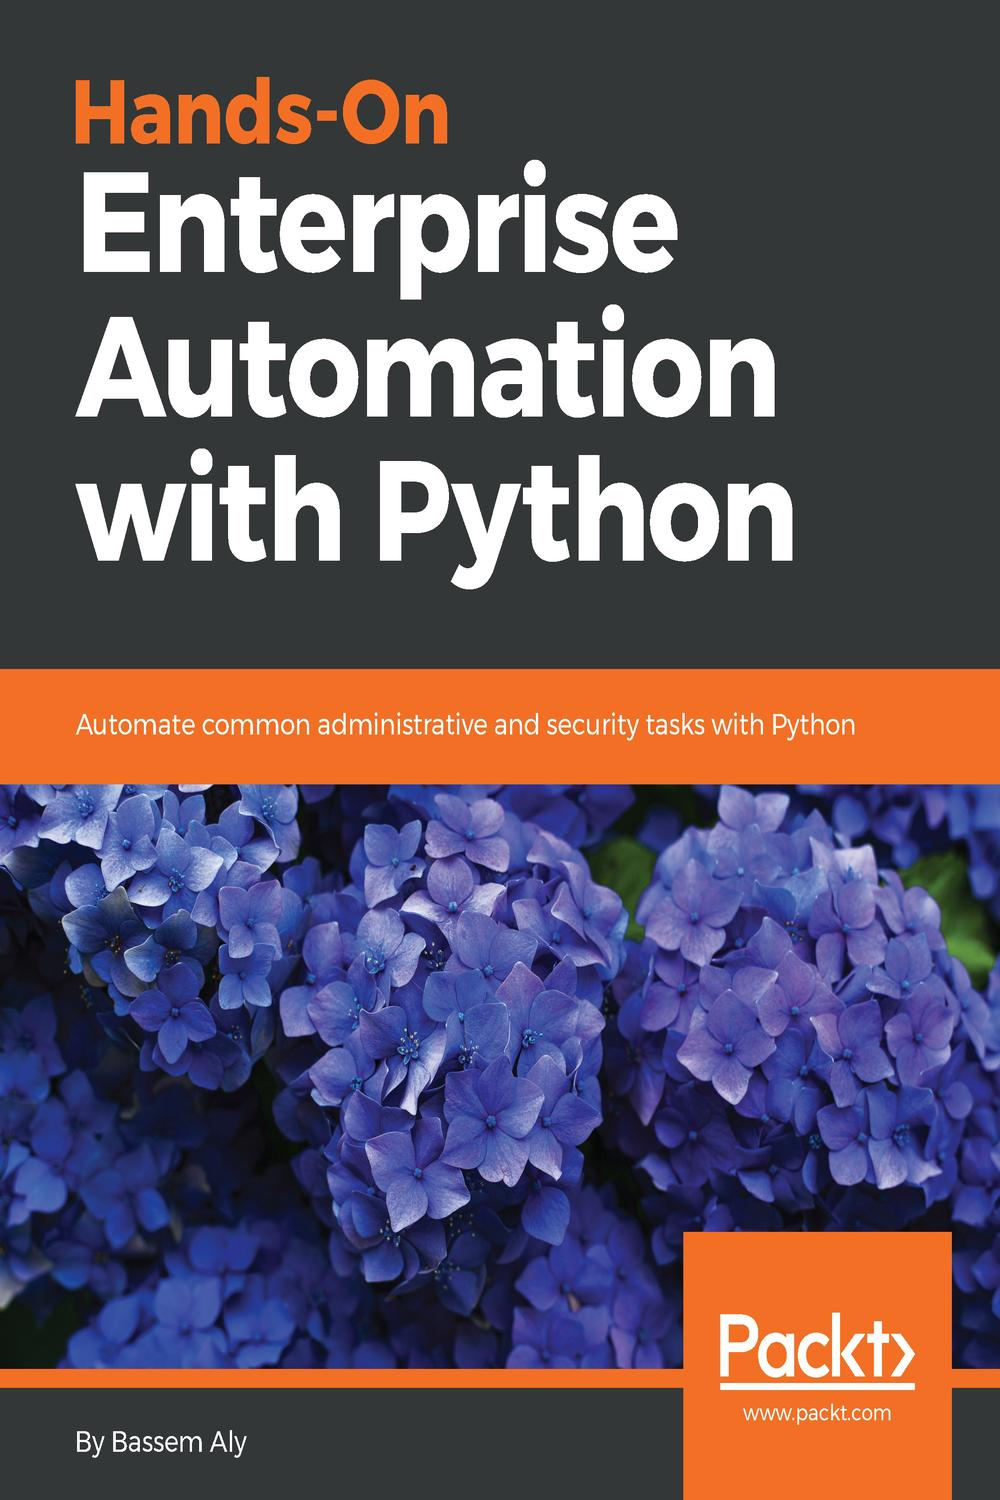 Hands-On Enterprise Automation with Python by Bassem Aly | Read